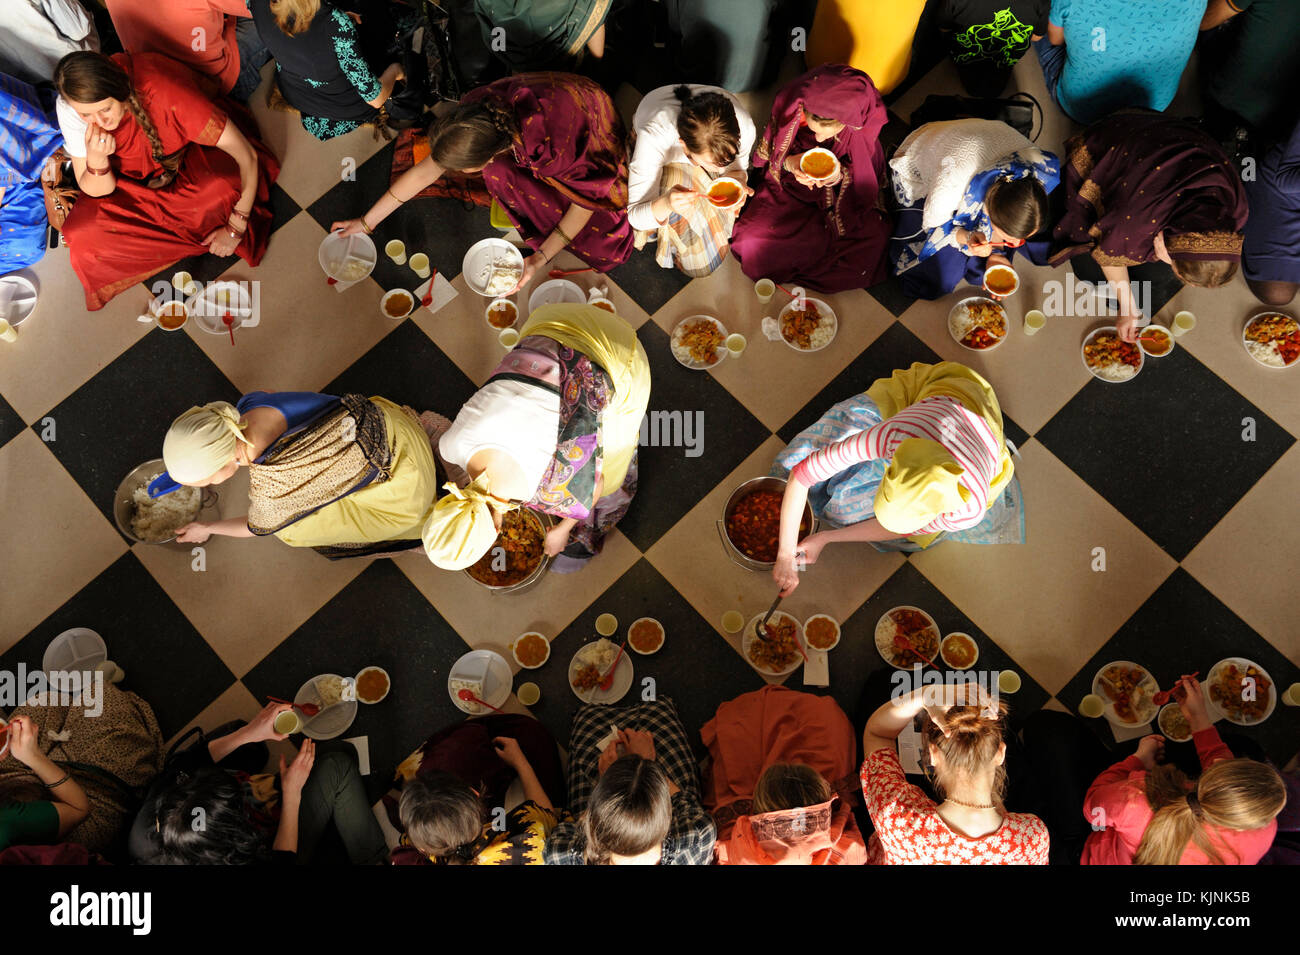 Attendants give to parishioners Prasad - food that is a religious offering in Krishnaism. April 3, 2017. The Krishna - Stock Image